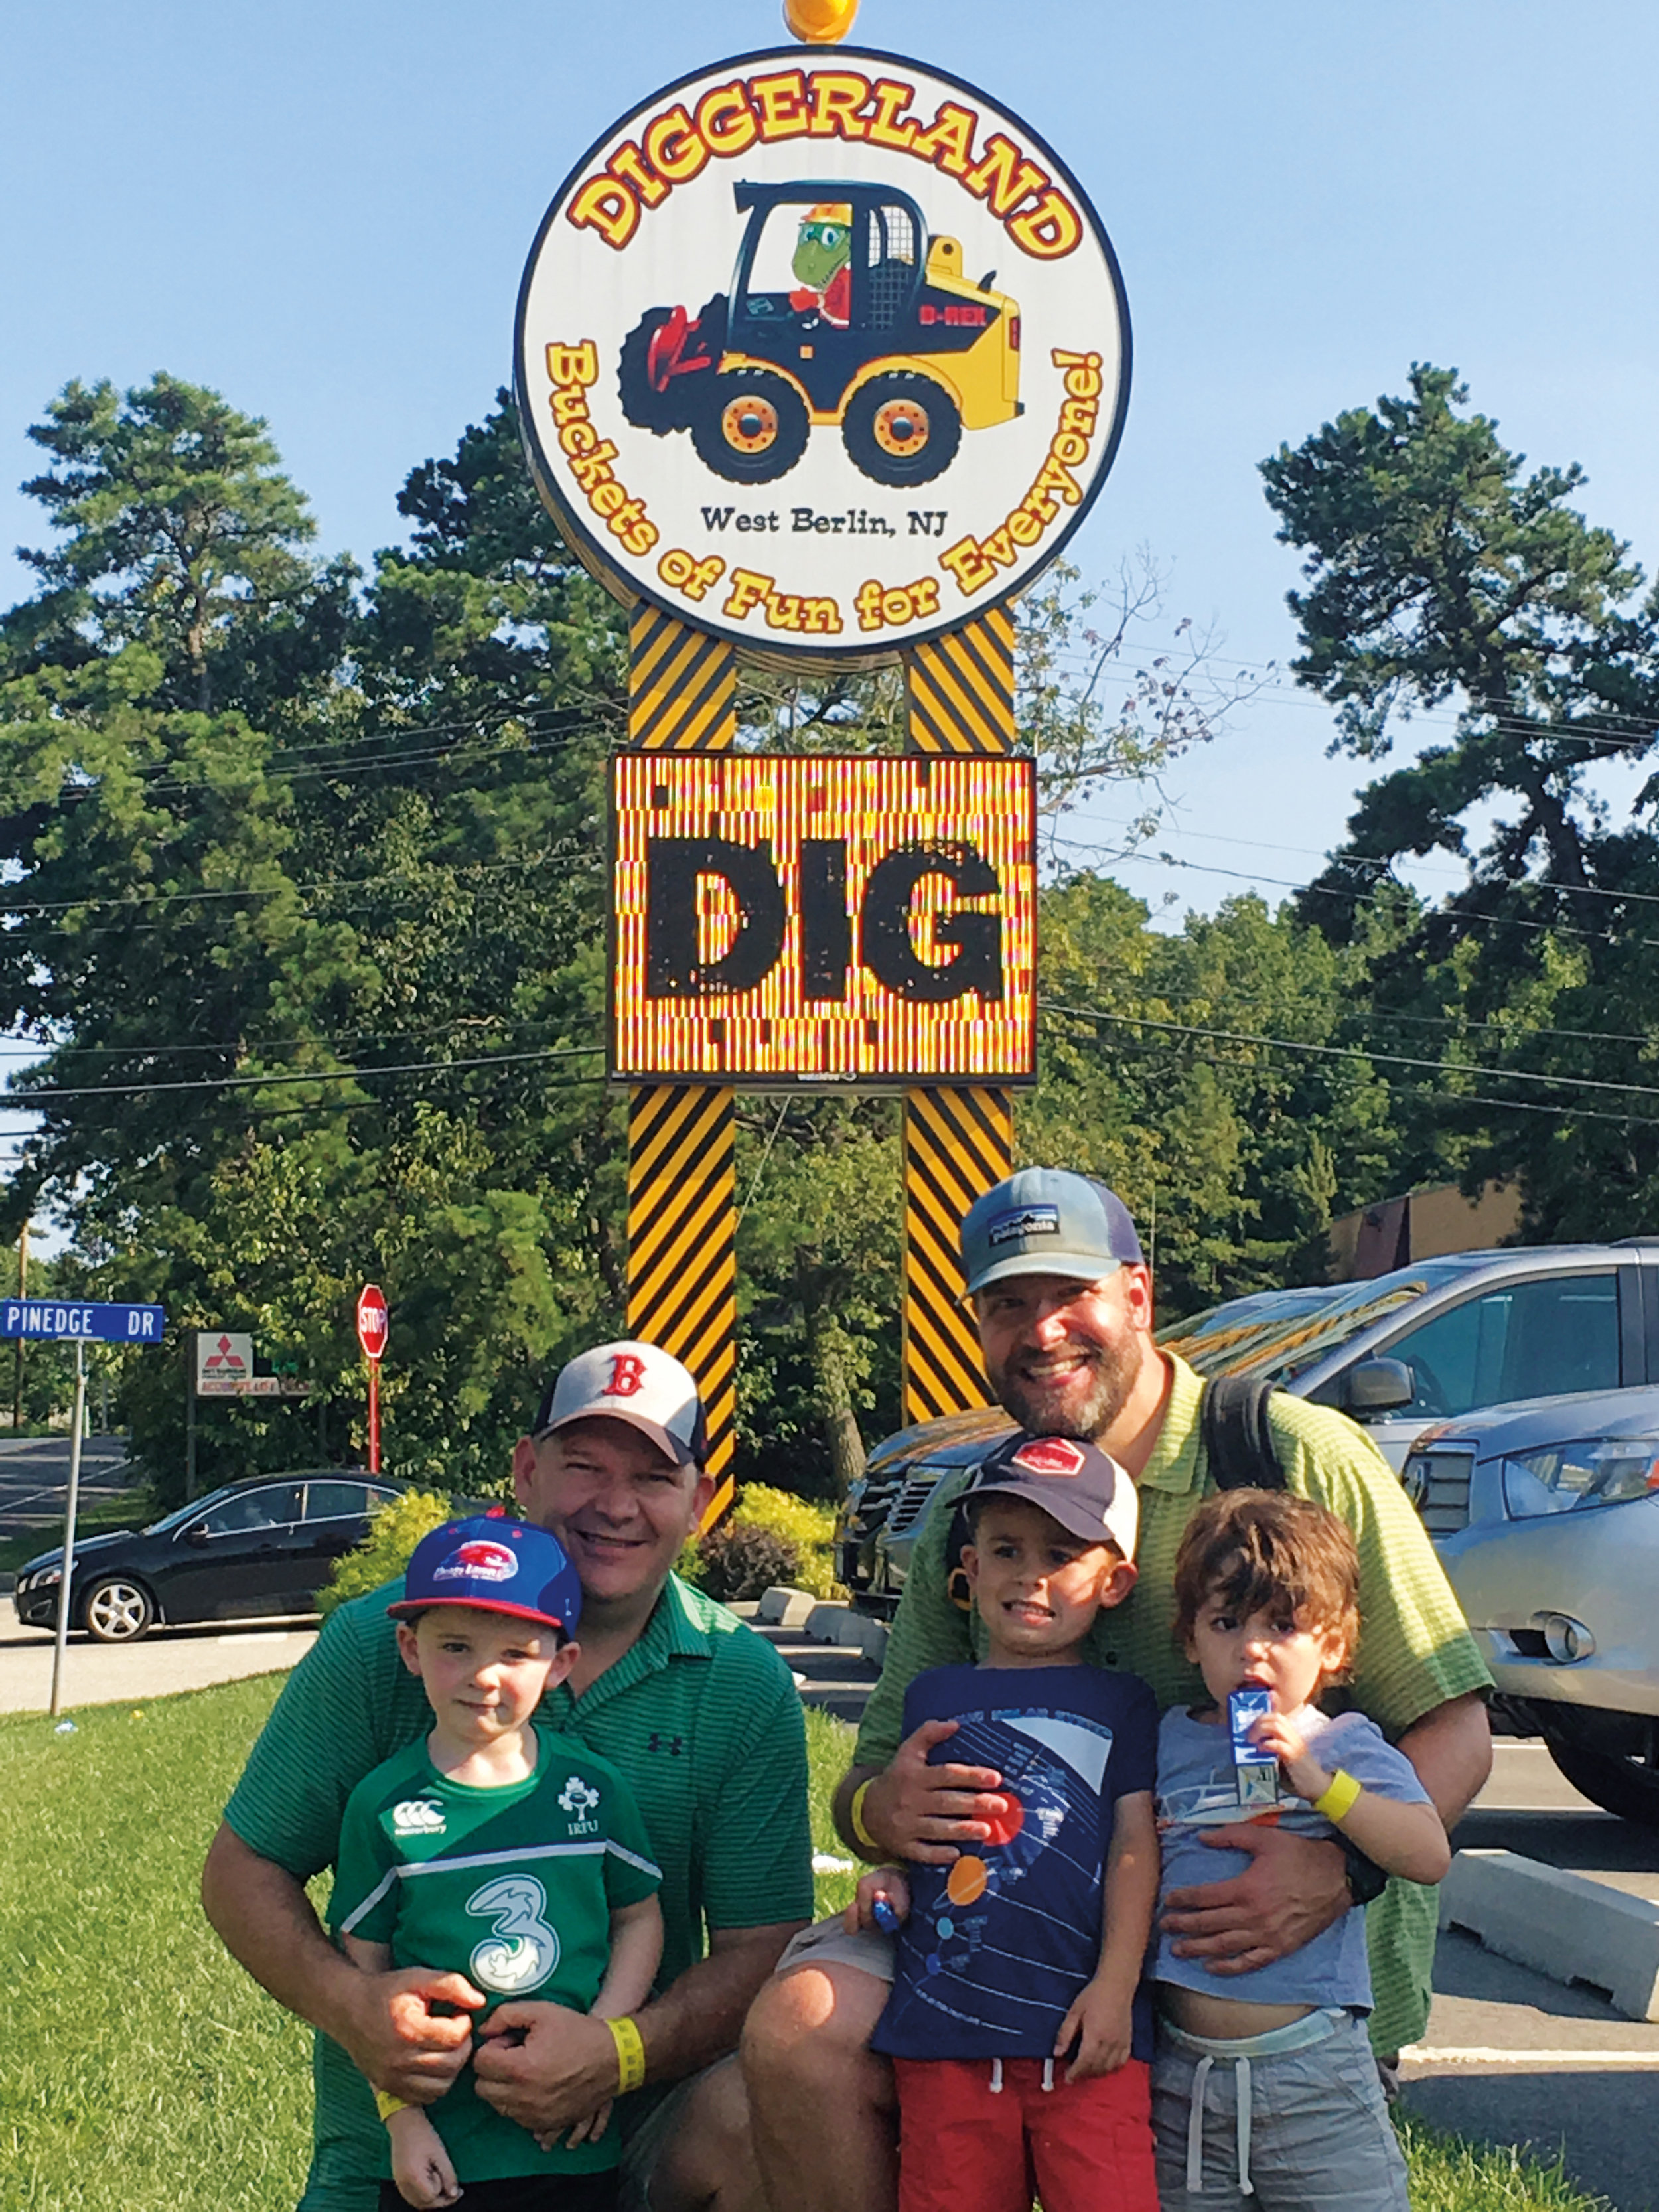 Sean Finnerty '90 (l.), with son Hugh, and Toby True '91, with sons Toby and Lincoln, spent a fun-filled day together at Diggerland (N.J.).